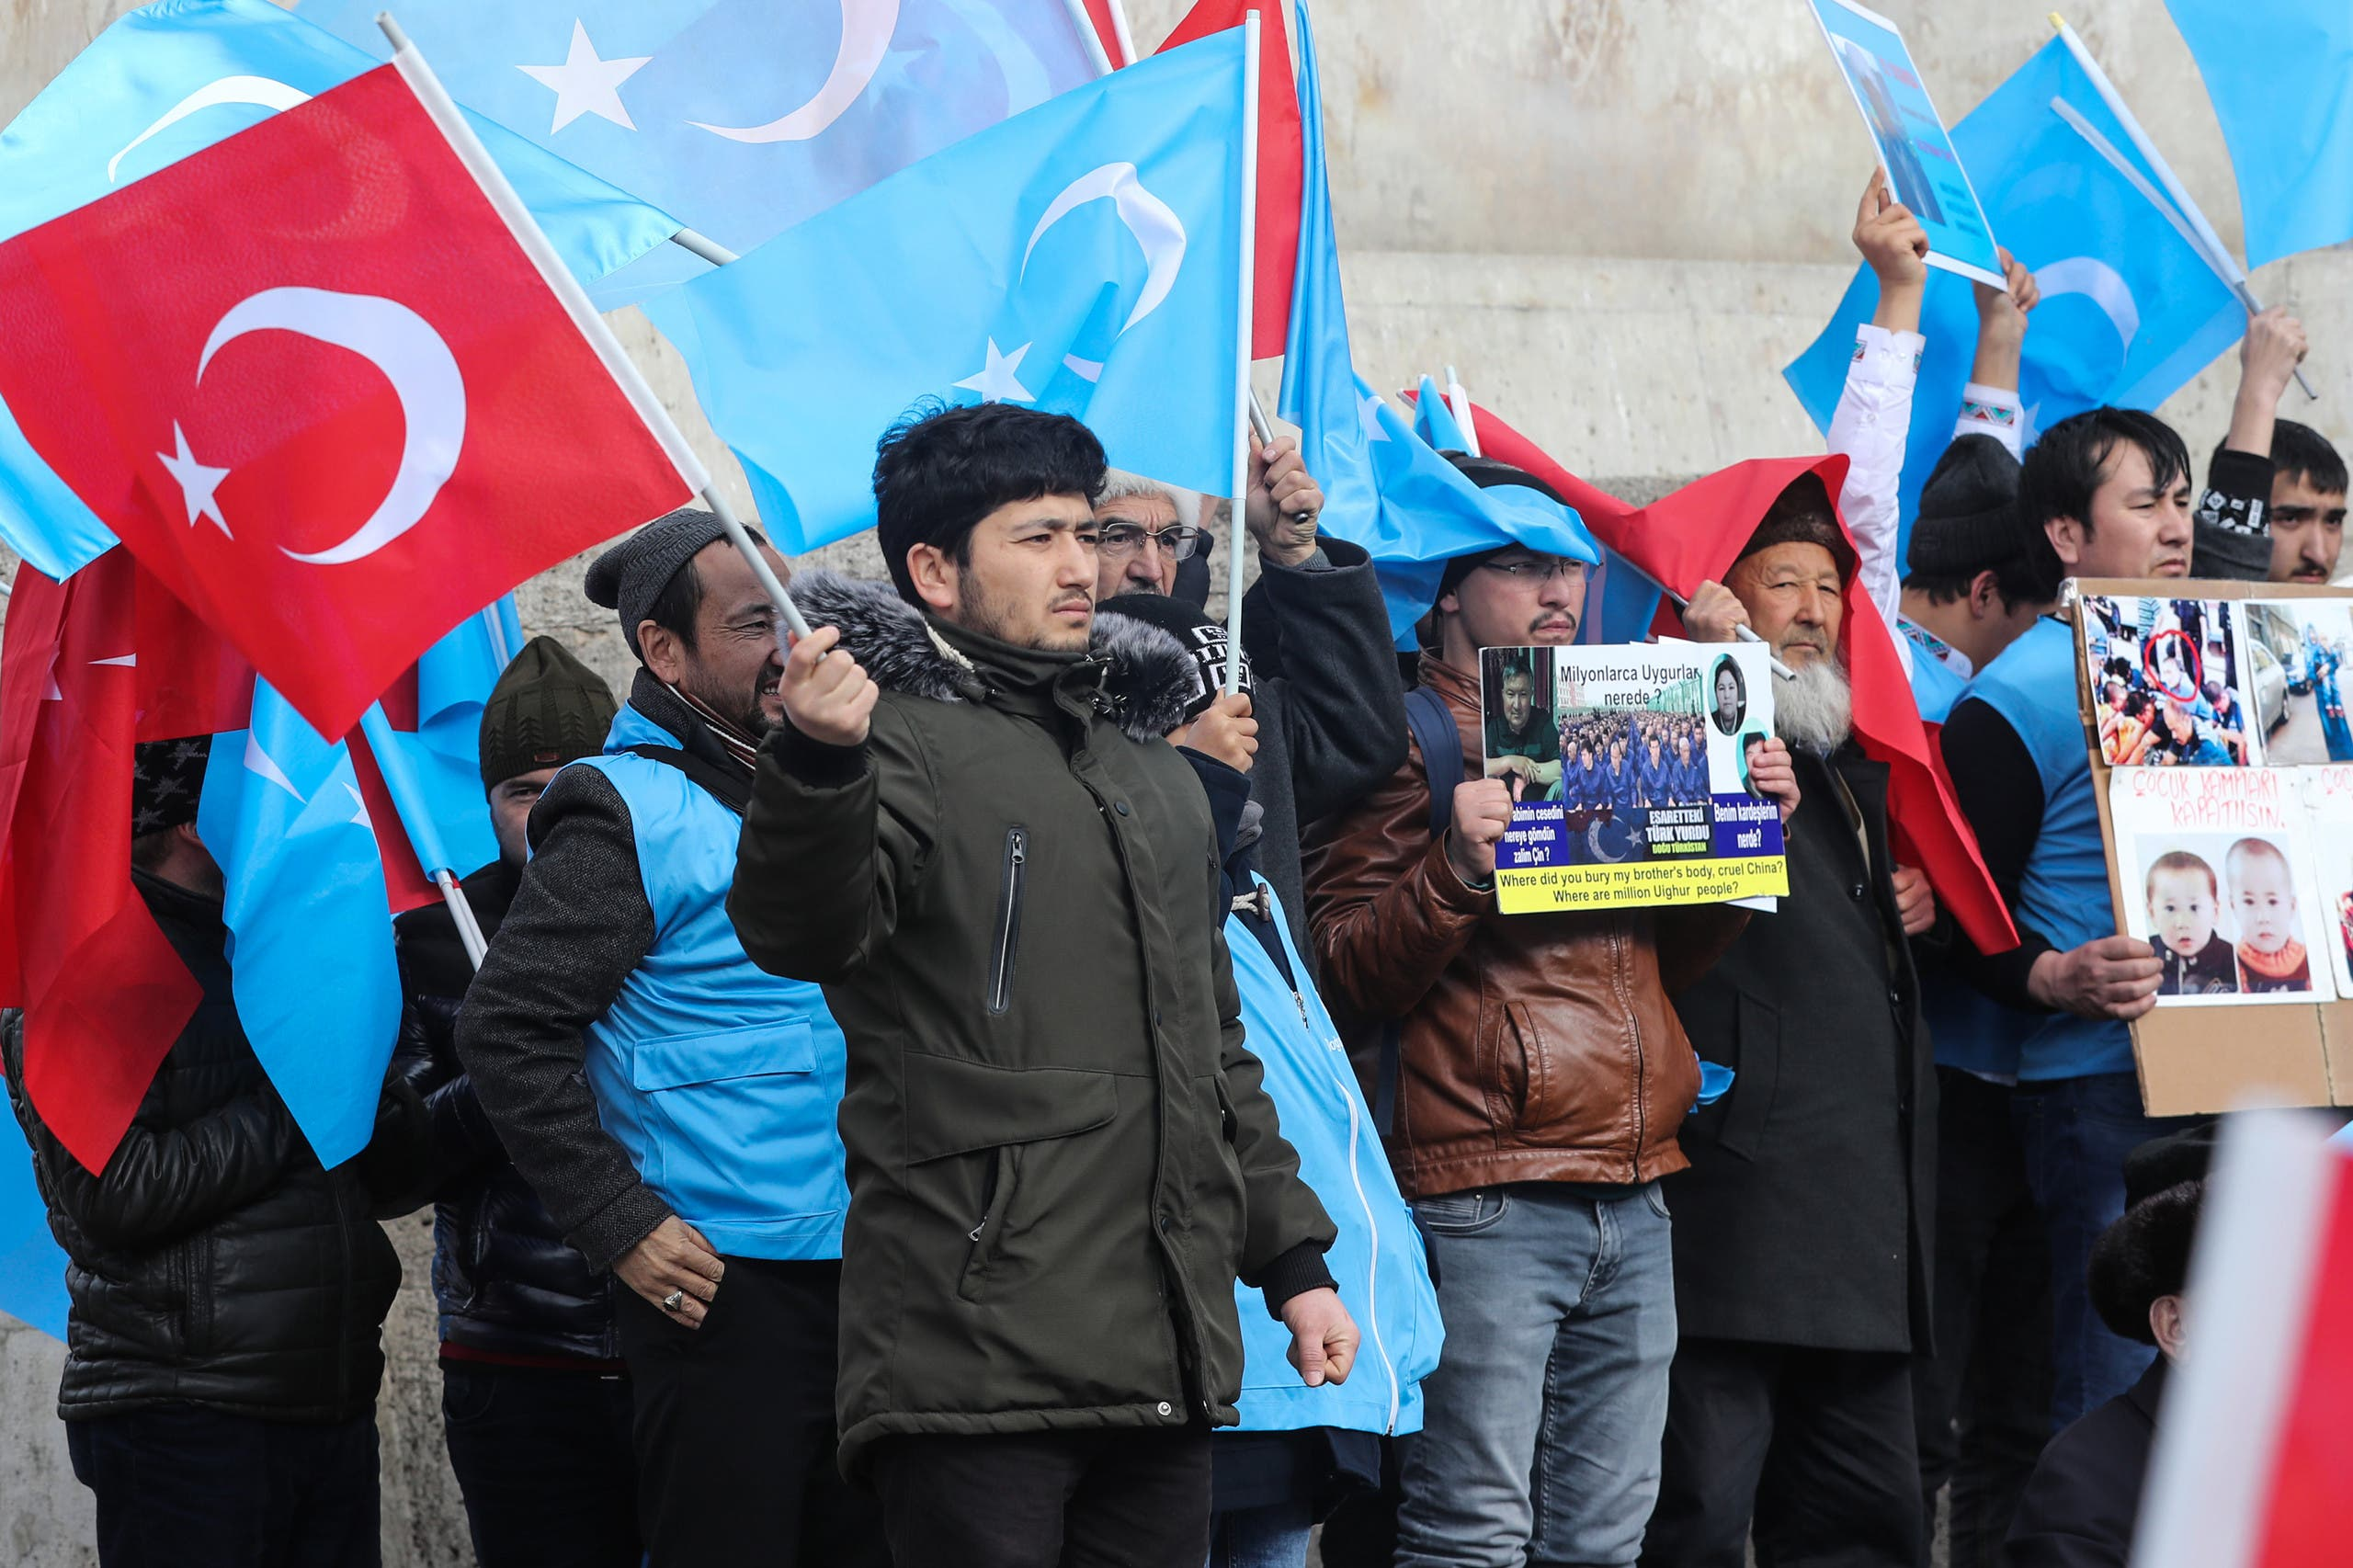 Uighurs living in Turkey stage a demonstration in Ankara on February 5, 2020. (AFP)